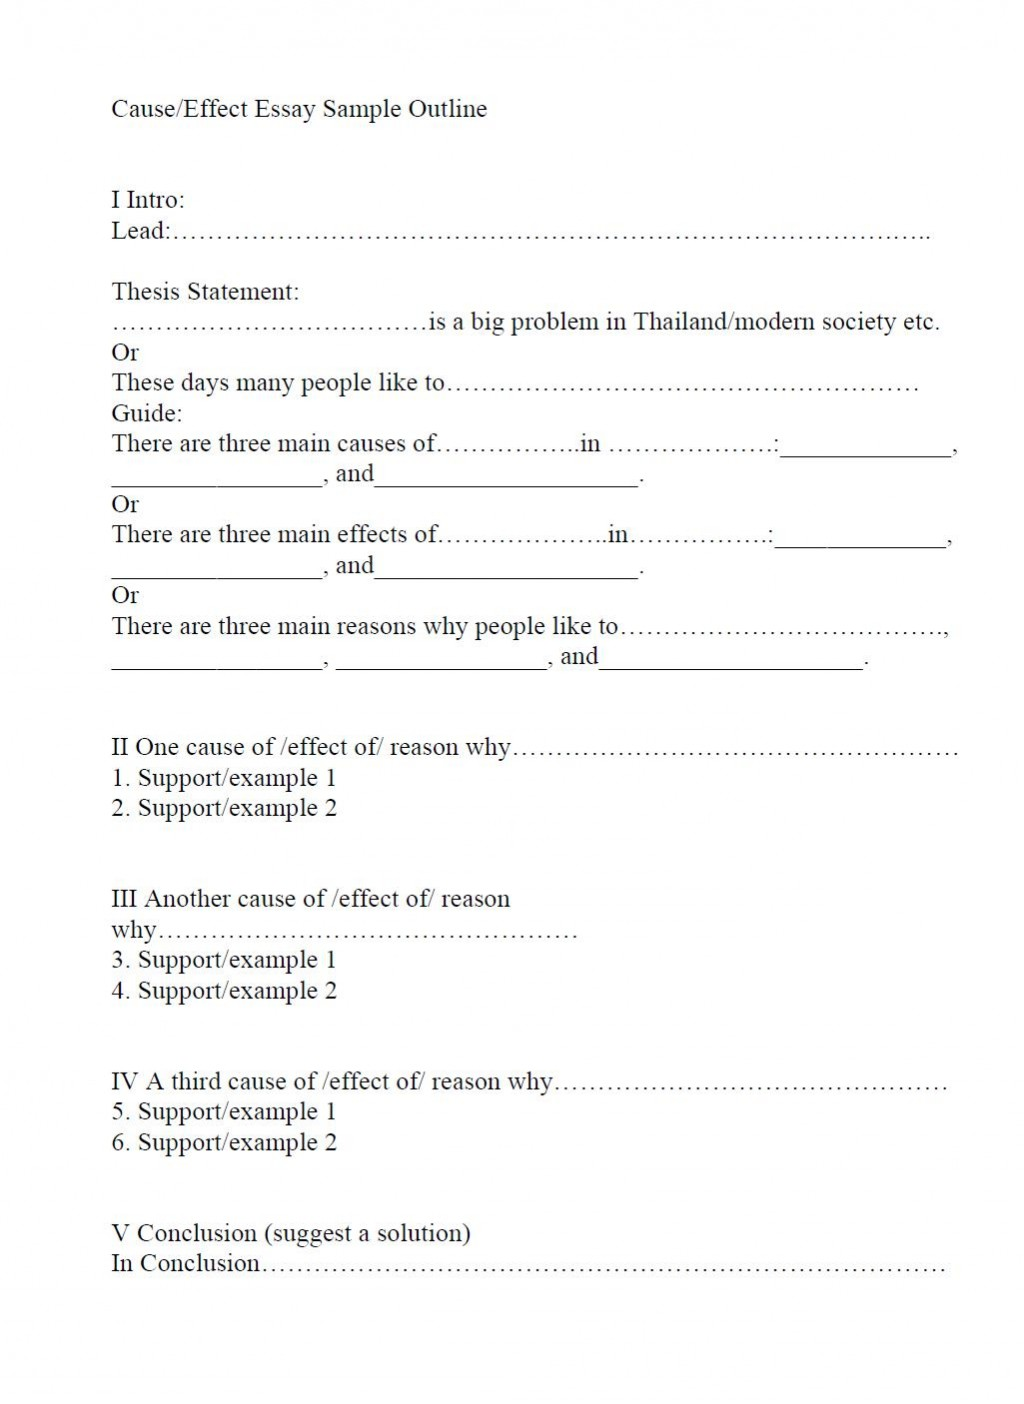 019 Outline And Essay Cause Effect Sample Impressive Template For Compare Contrast Printable Large